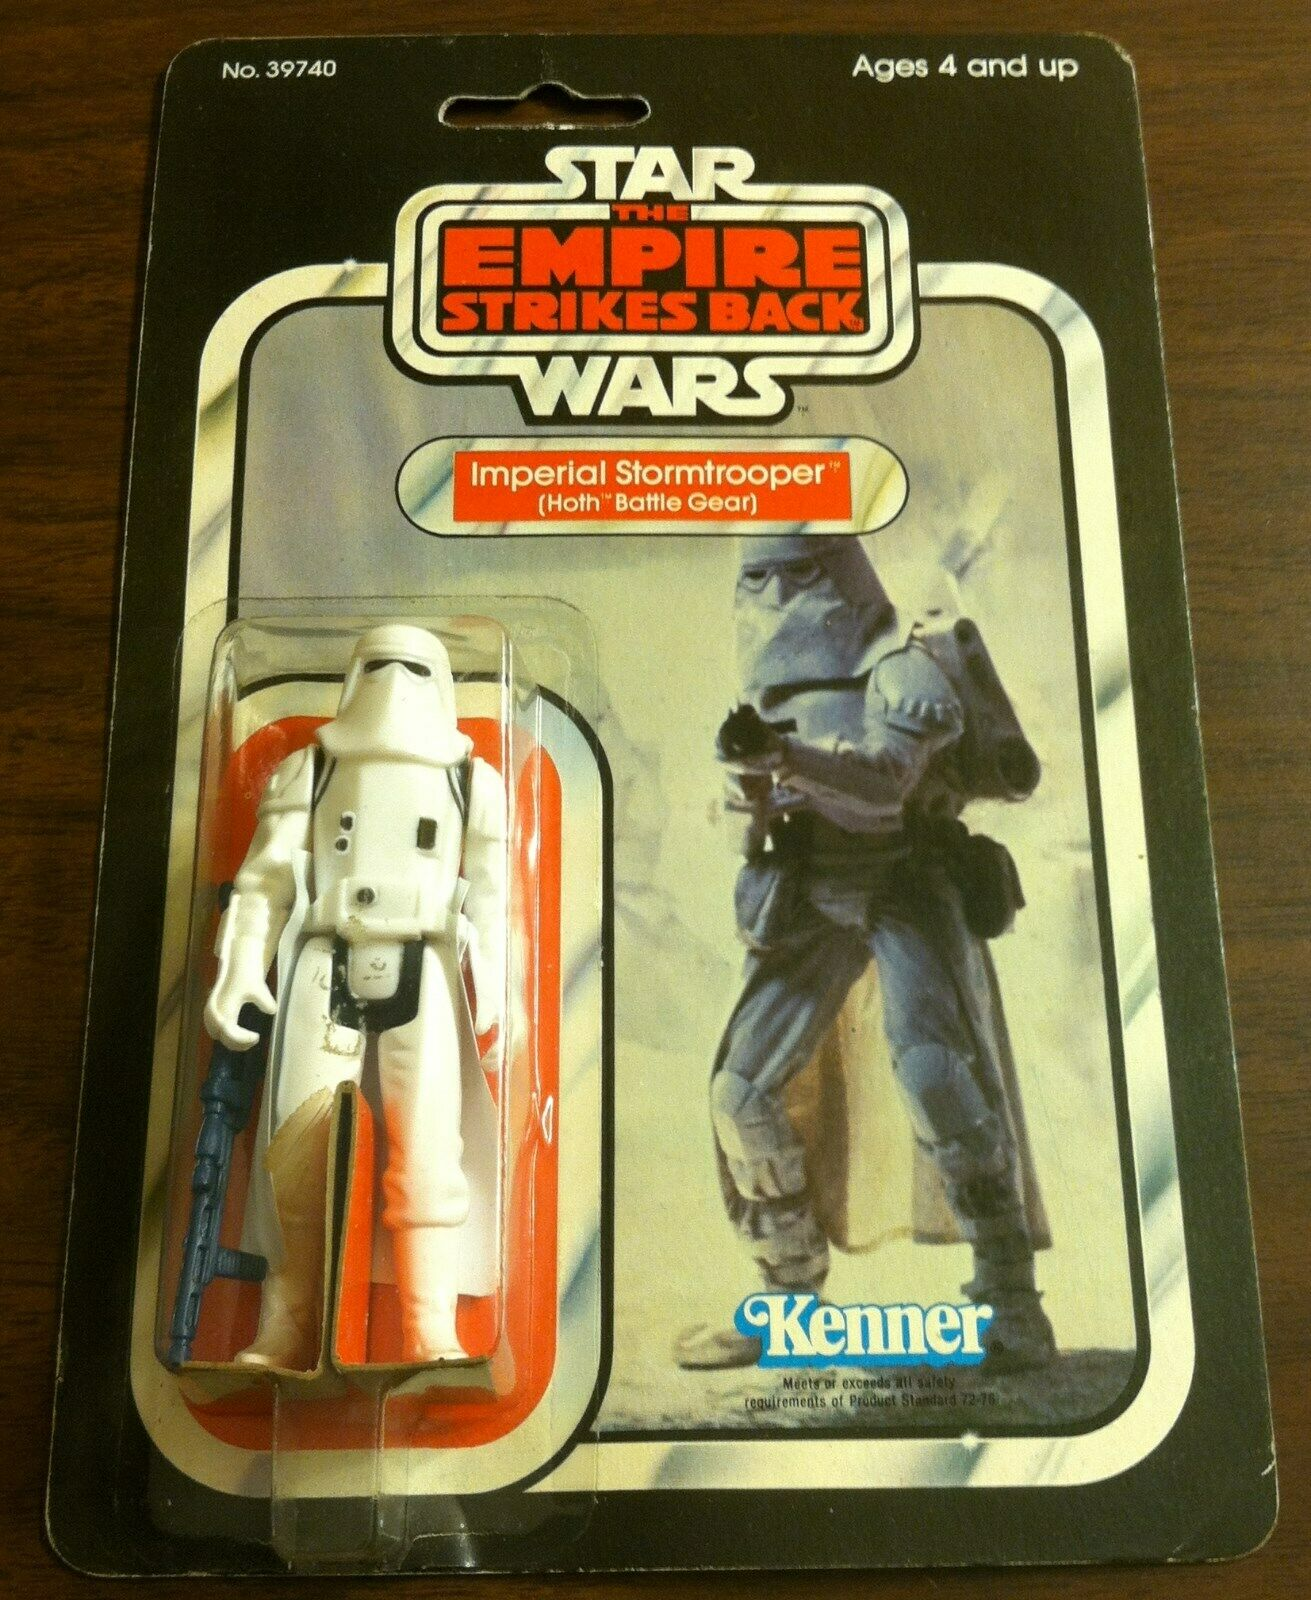 1980 KENNER STAR WARS EMPIRE STRIKES BACK HOTH STORMTROOPER 31 A WATER DAMAGE